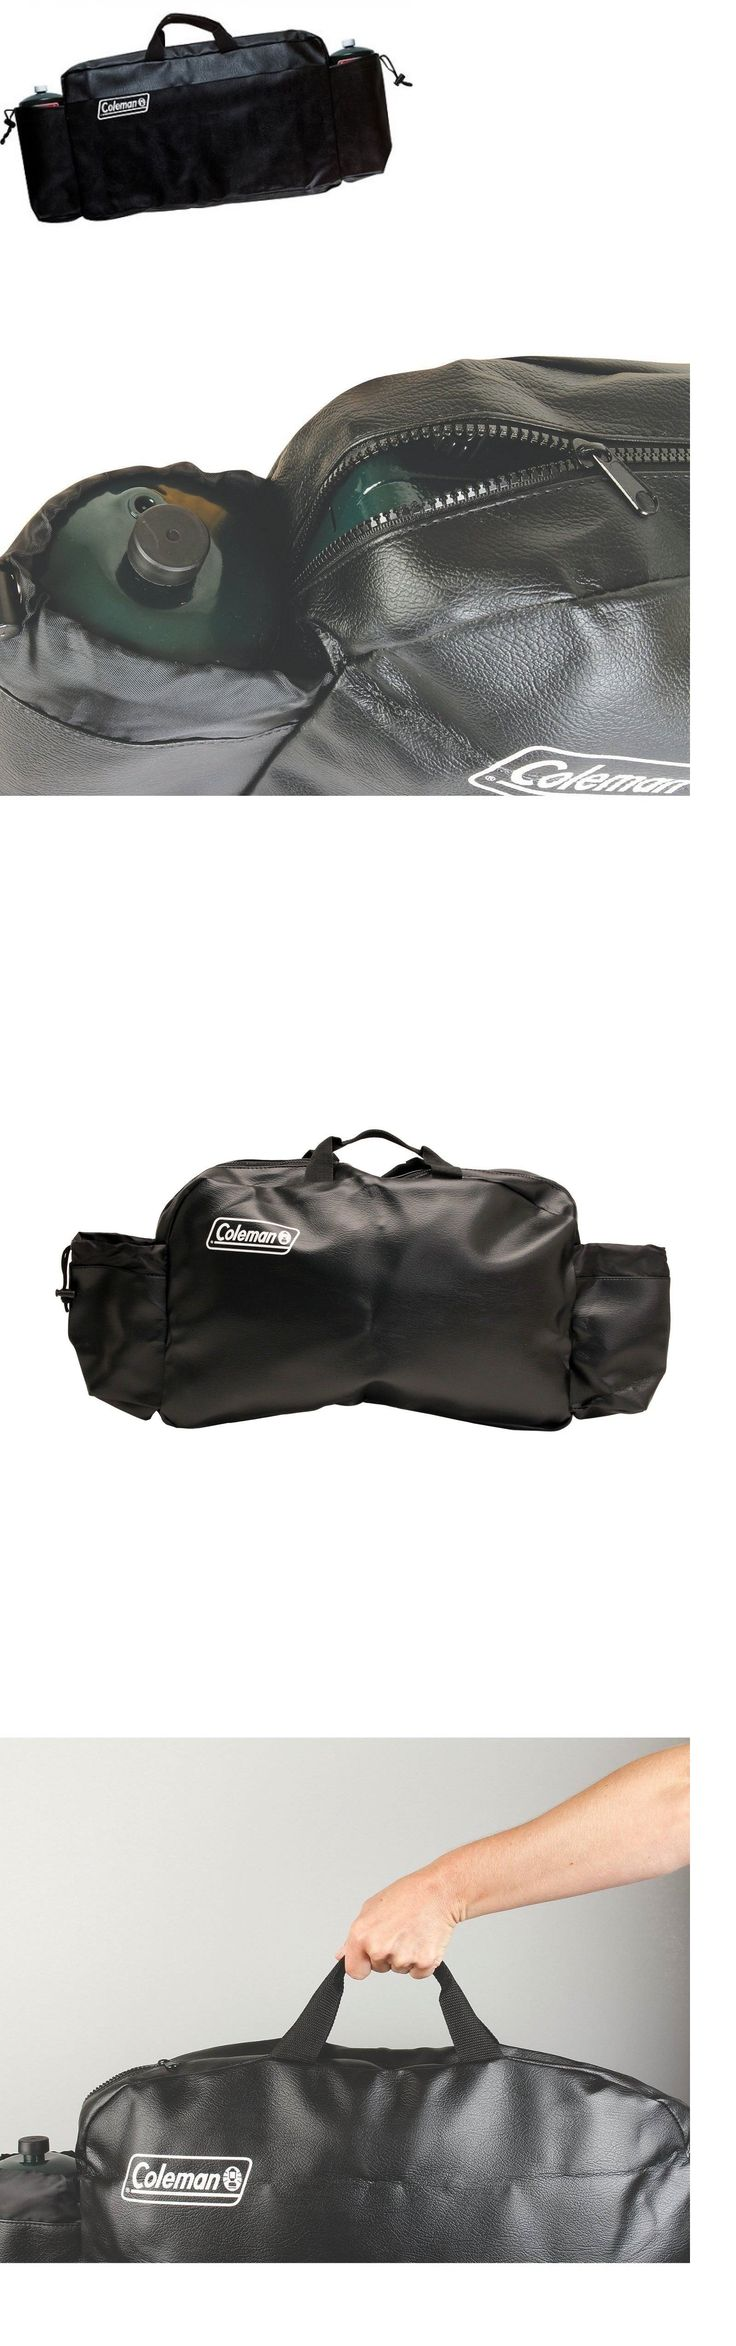 Parts and Accessories 181389: Heavy-Duty Grill Stove Fuel Carrying Storage Case Bag Travel Camping Bbq Black. -> BUY IT NOW ONLY: $47.99 on eBay!